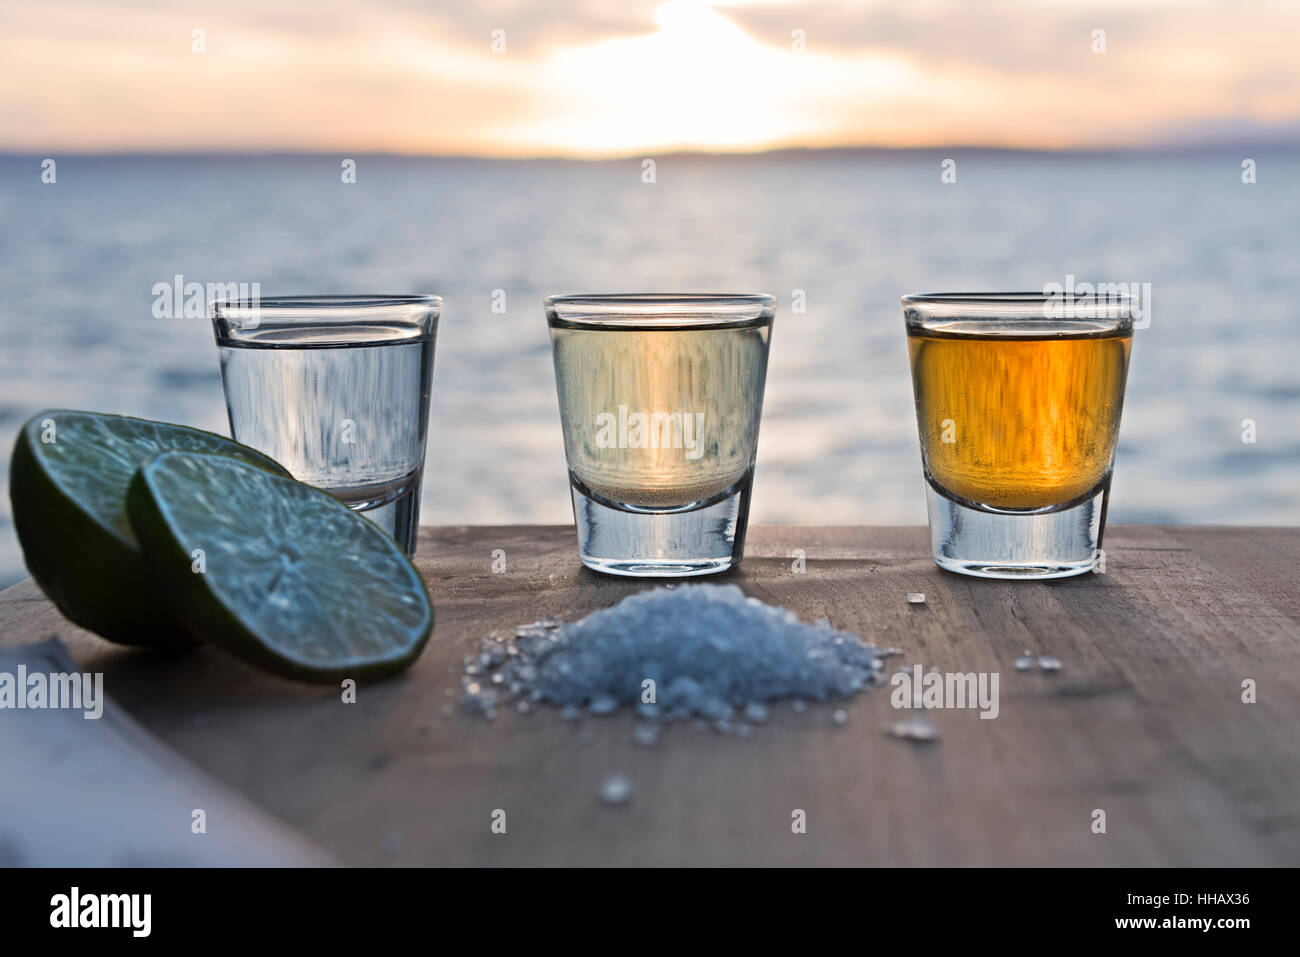 tequila worm stock photos tequila worm stock images alamy